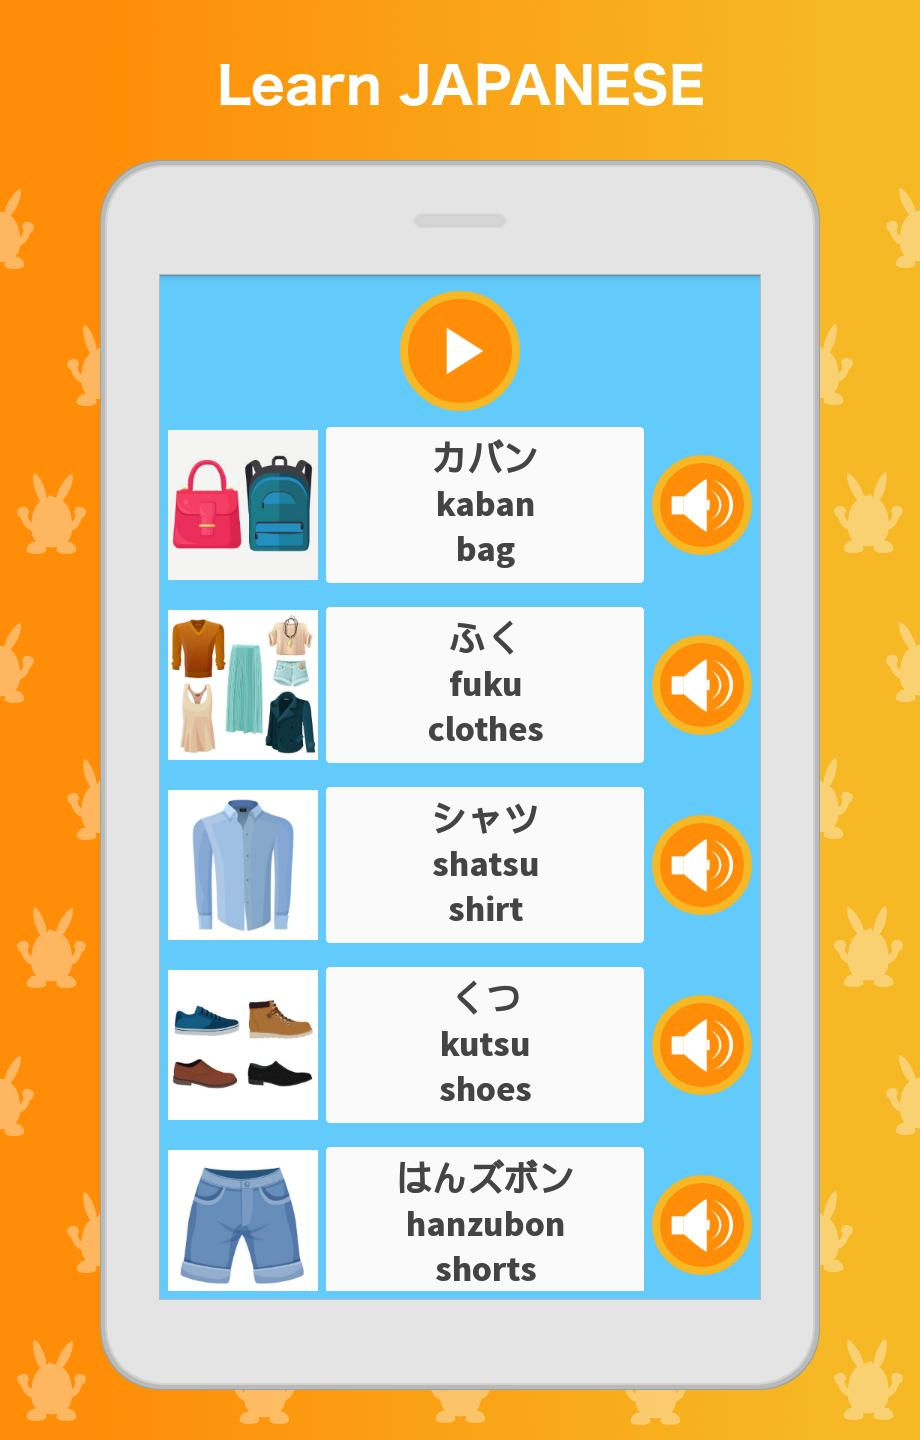 Learn Japanese - Language & Grammar Learning for Android - APK Download